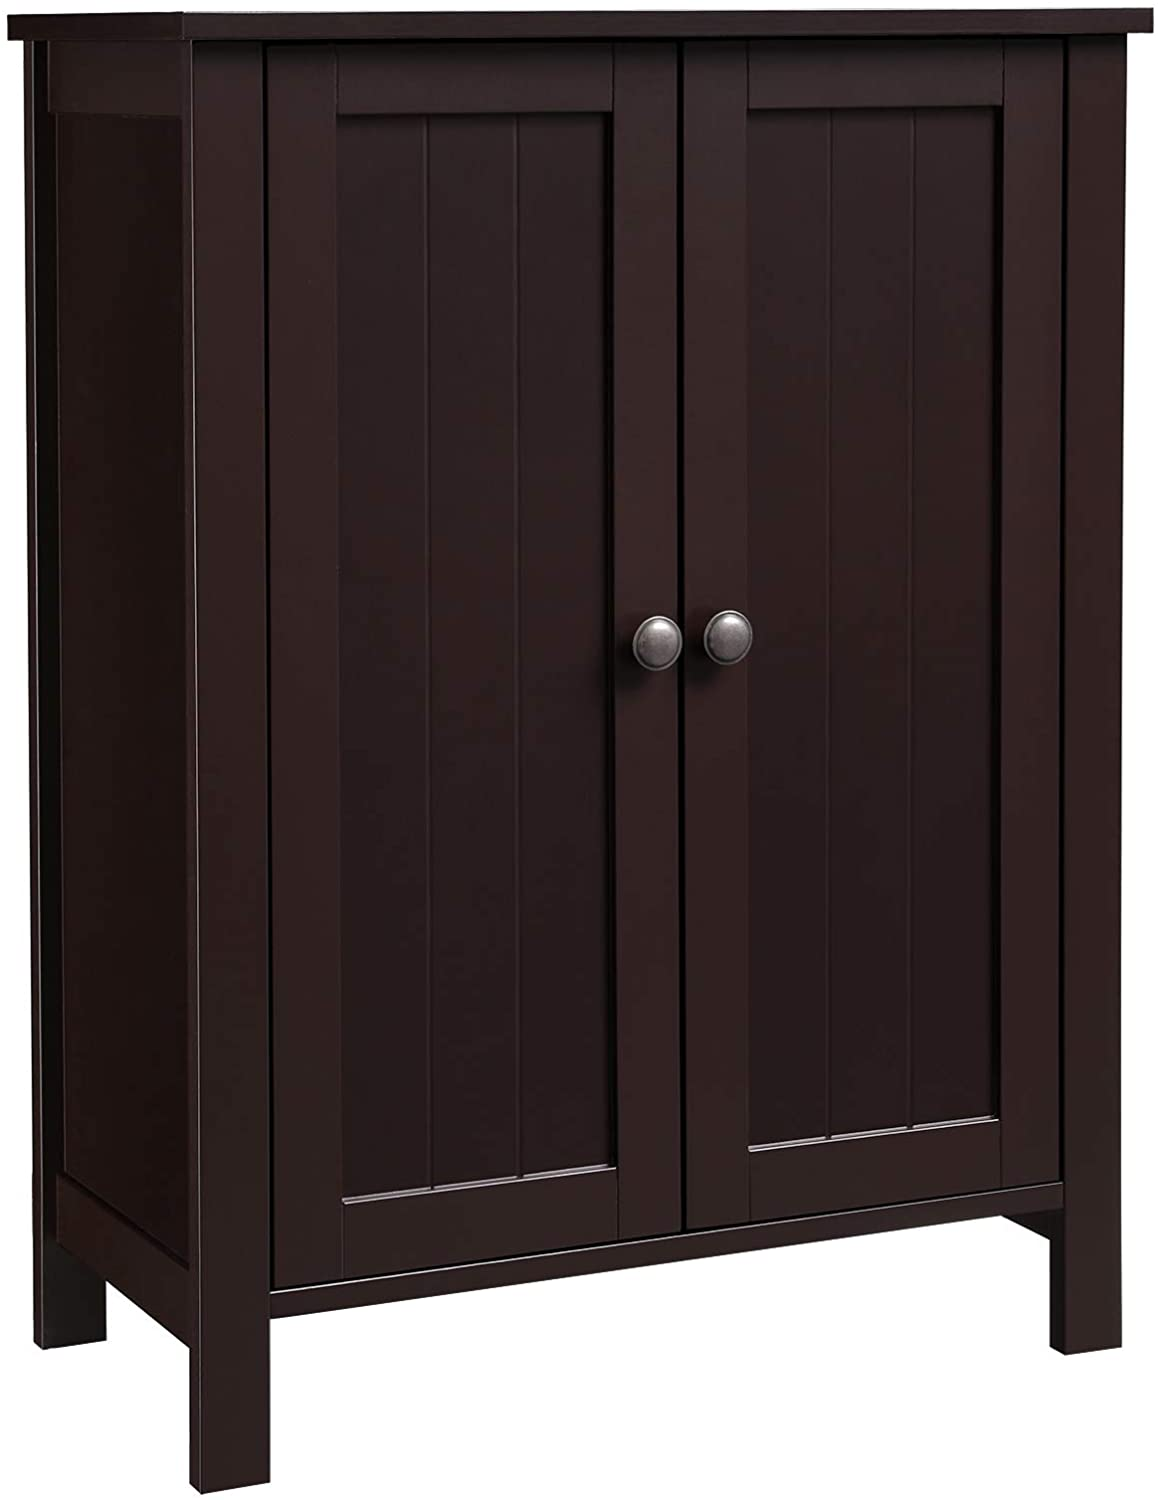 "VASAGLE Bathroom Floor Storage Cabinet with Double Door Adjustable Shelf, 23.6""L x 11.8""W x 31.5""H, Brown UBCB60BR"